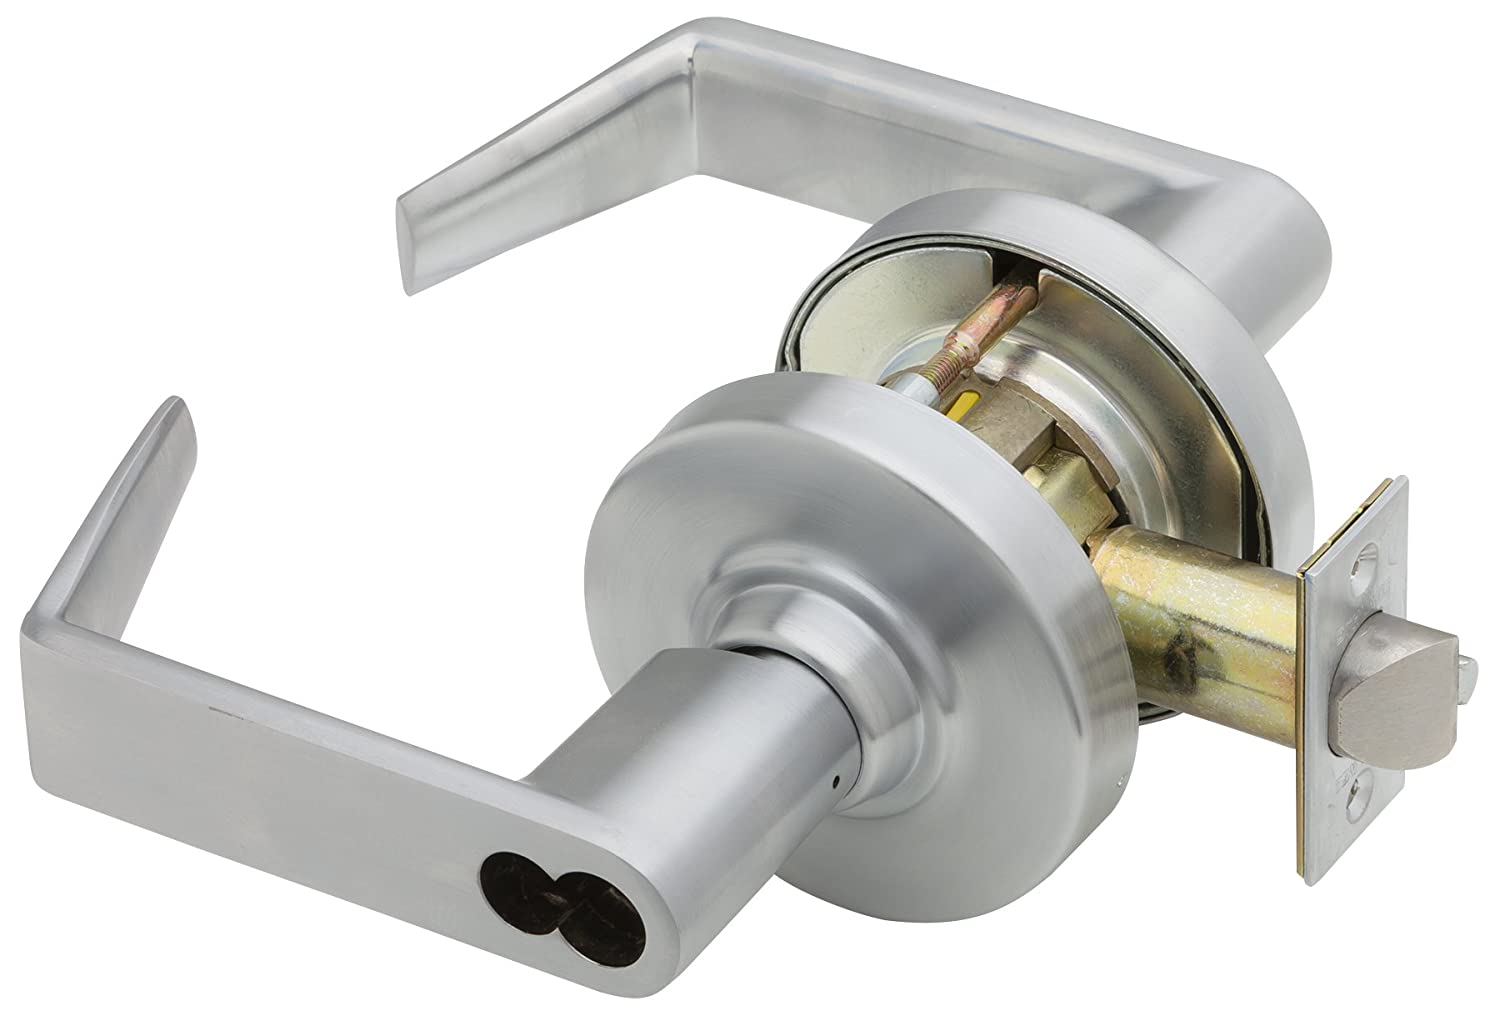 Classroom Security Function Satin Chrome Finish FSIC Series ND Grade 1 Cylindrical Lock Full Size Interchangeable Core Rhodes Design Schlage ND75JD RHO 626